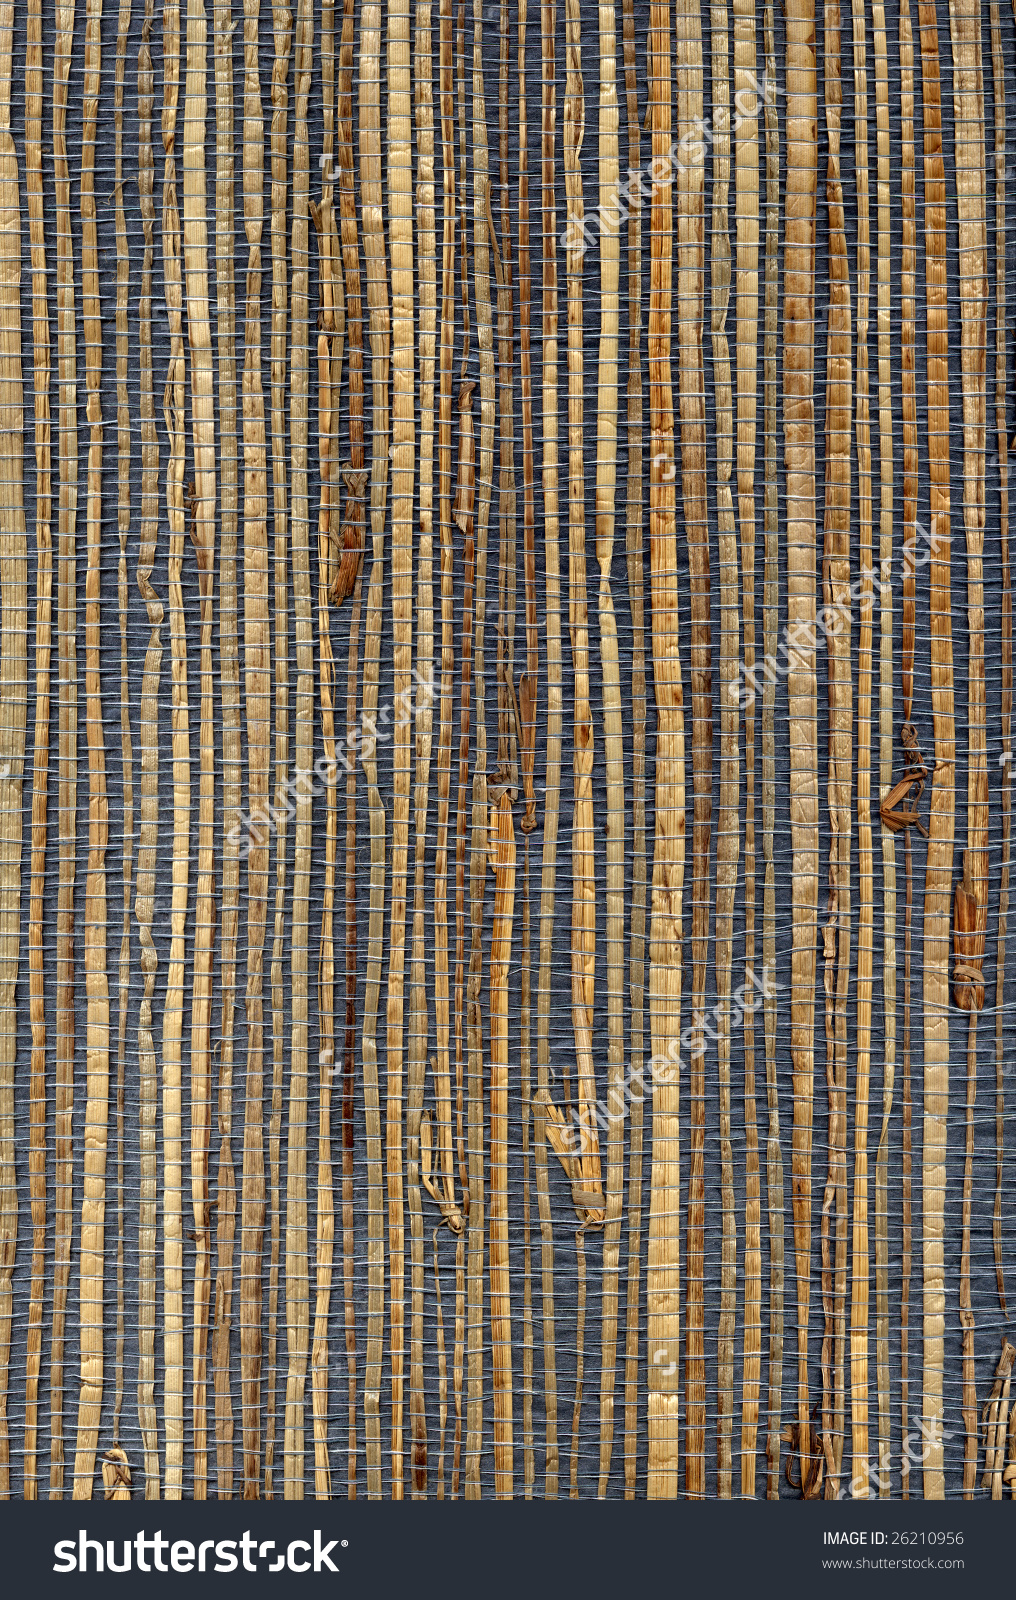 Wallpaper sample of old grasscloth material This is a high resolution 1016x1600